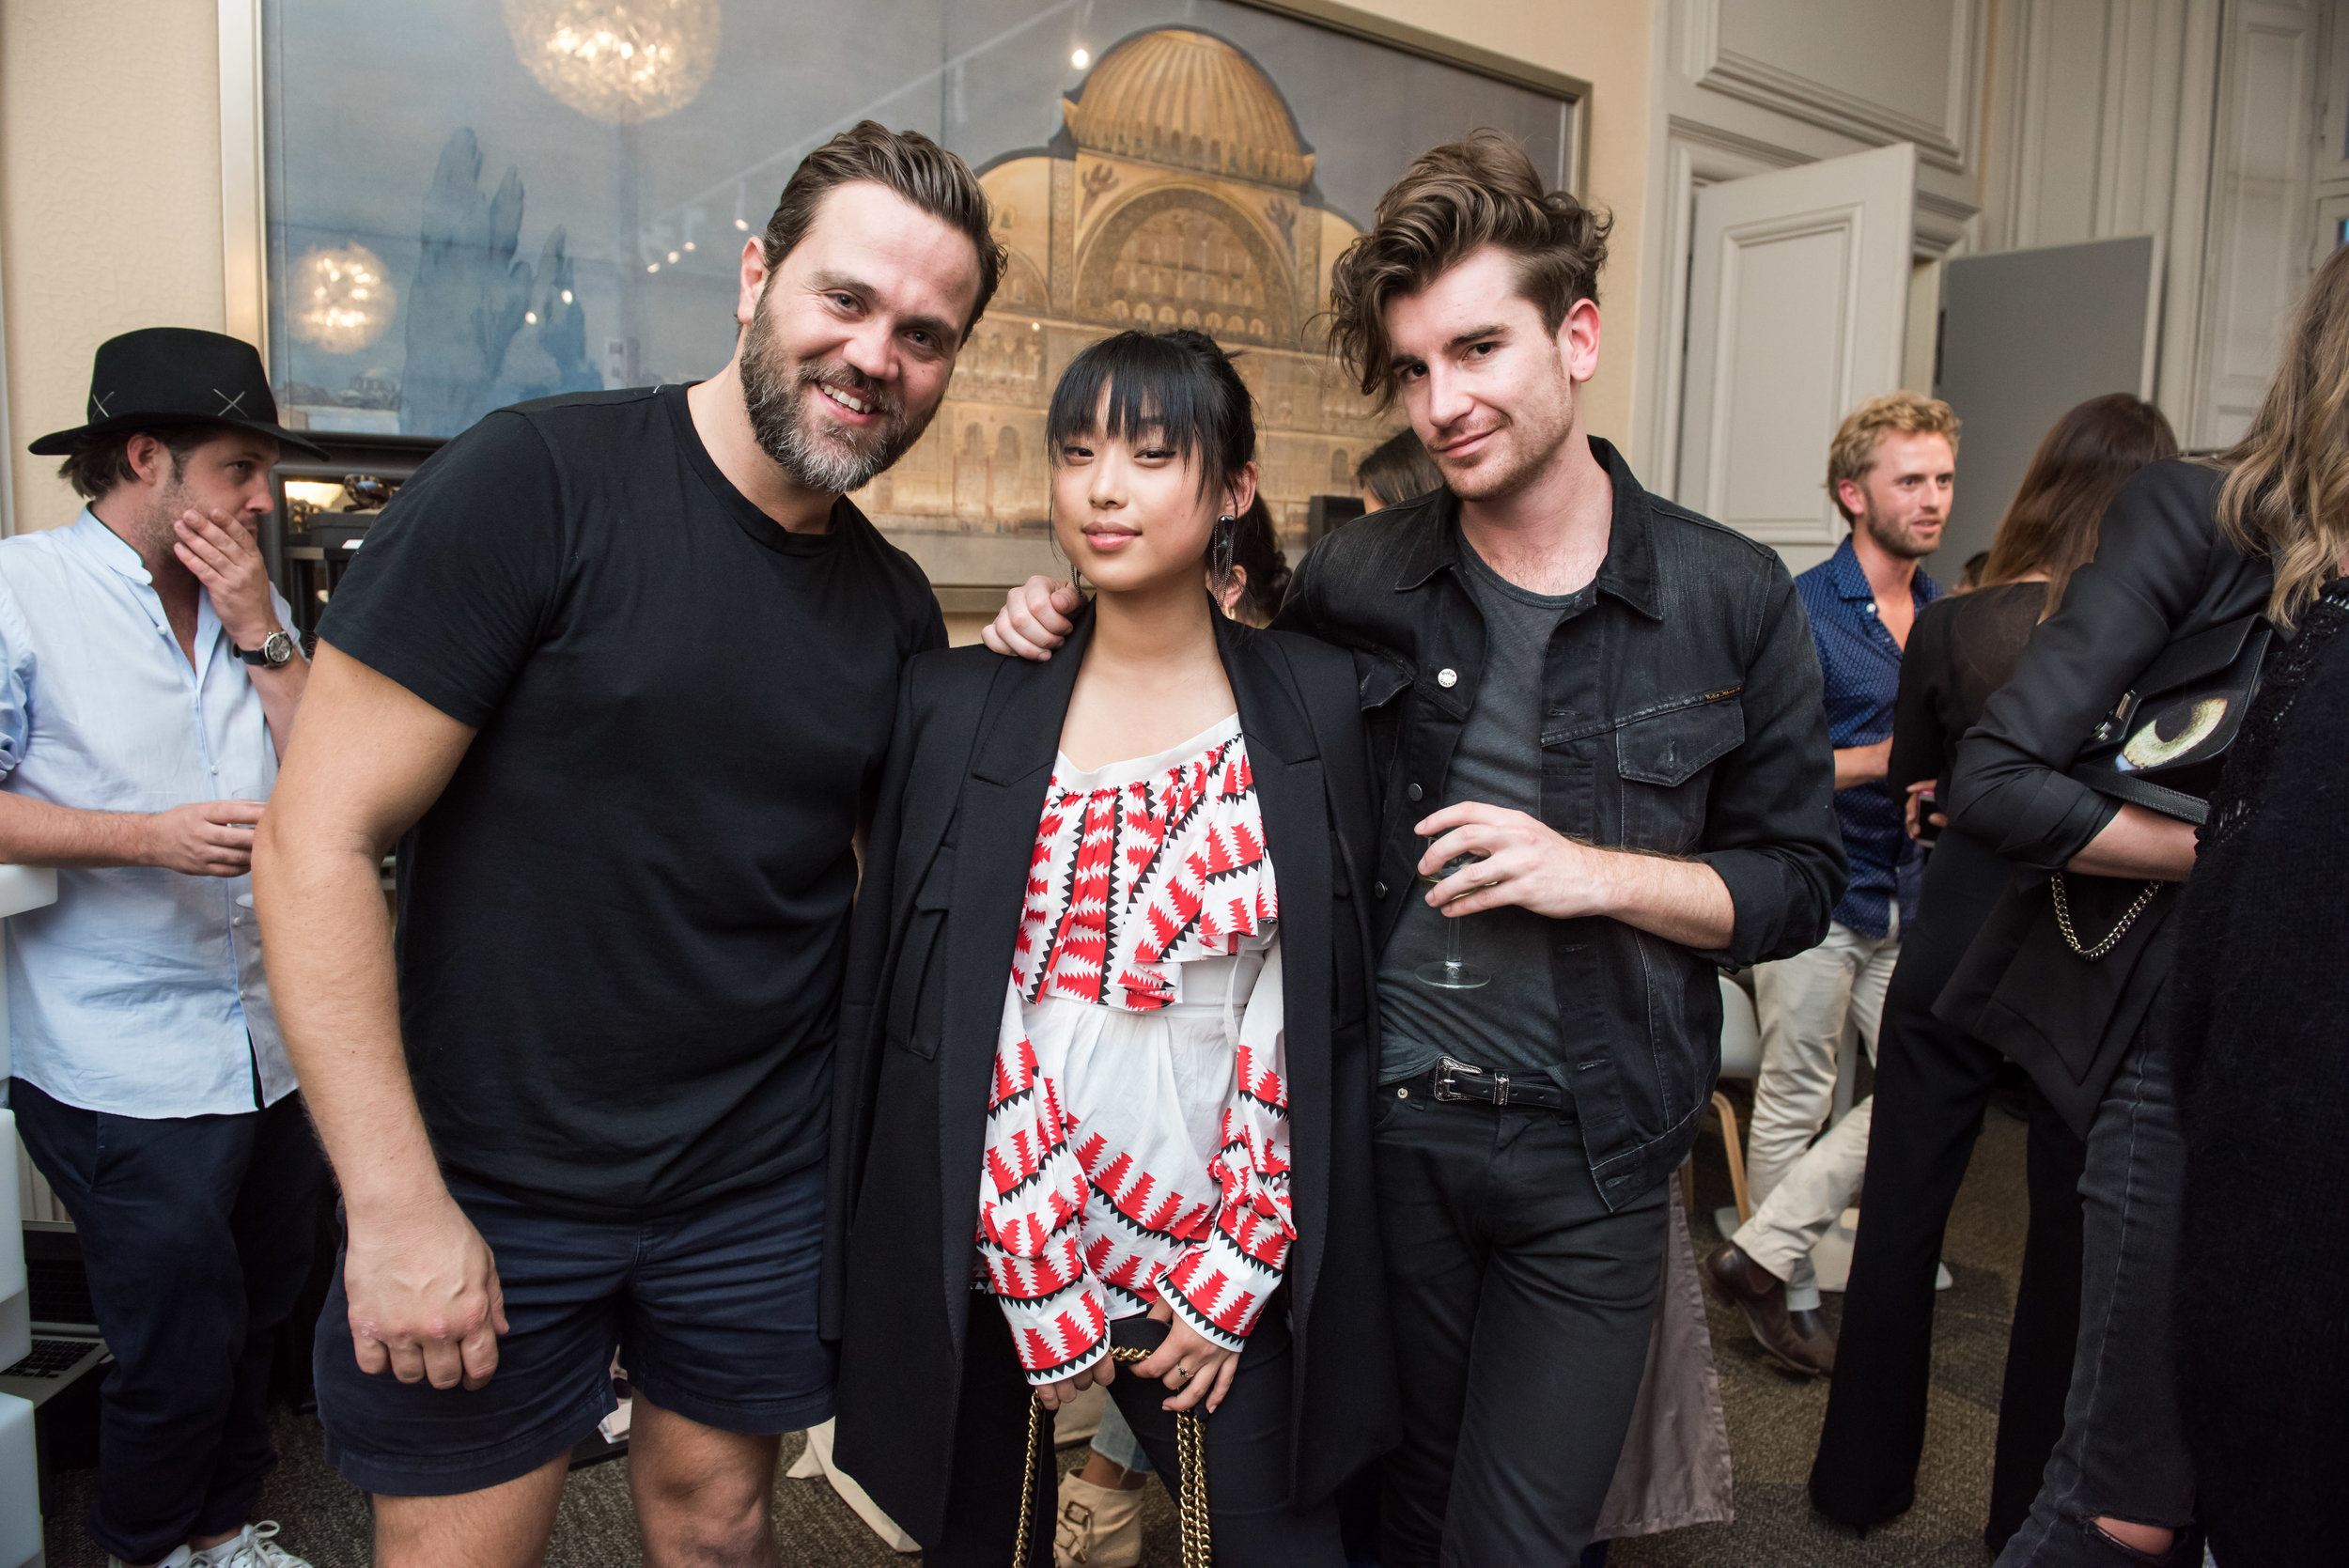 2016-09-29 - PARIS FASHION WEEK - day 3 - AFC Launch Party - 131 of 139 - _DSC0455 - 3 stars.jpg